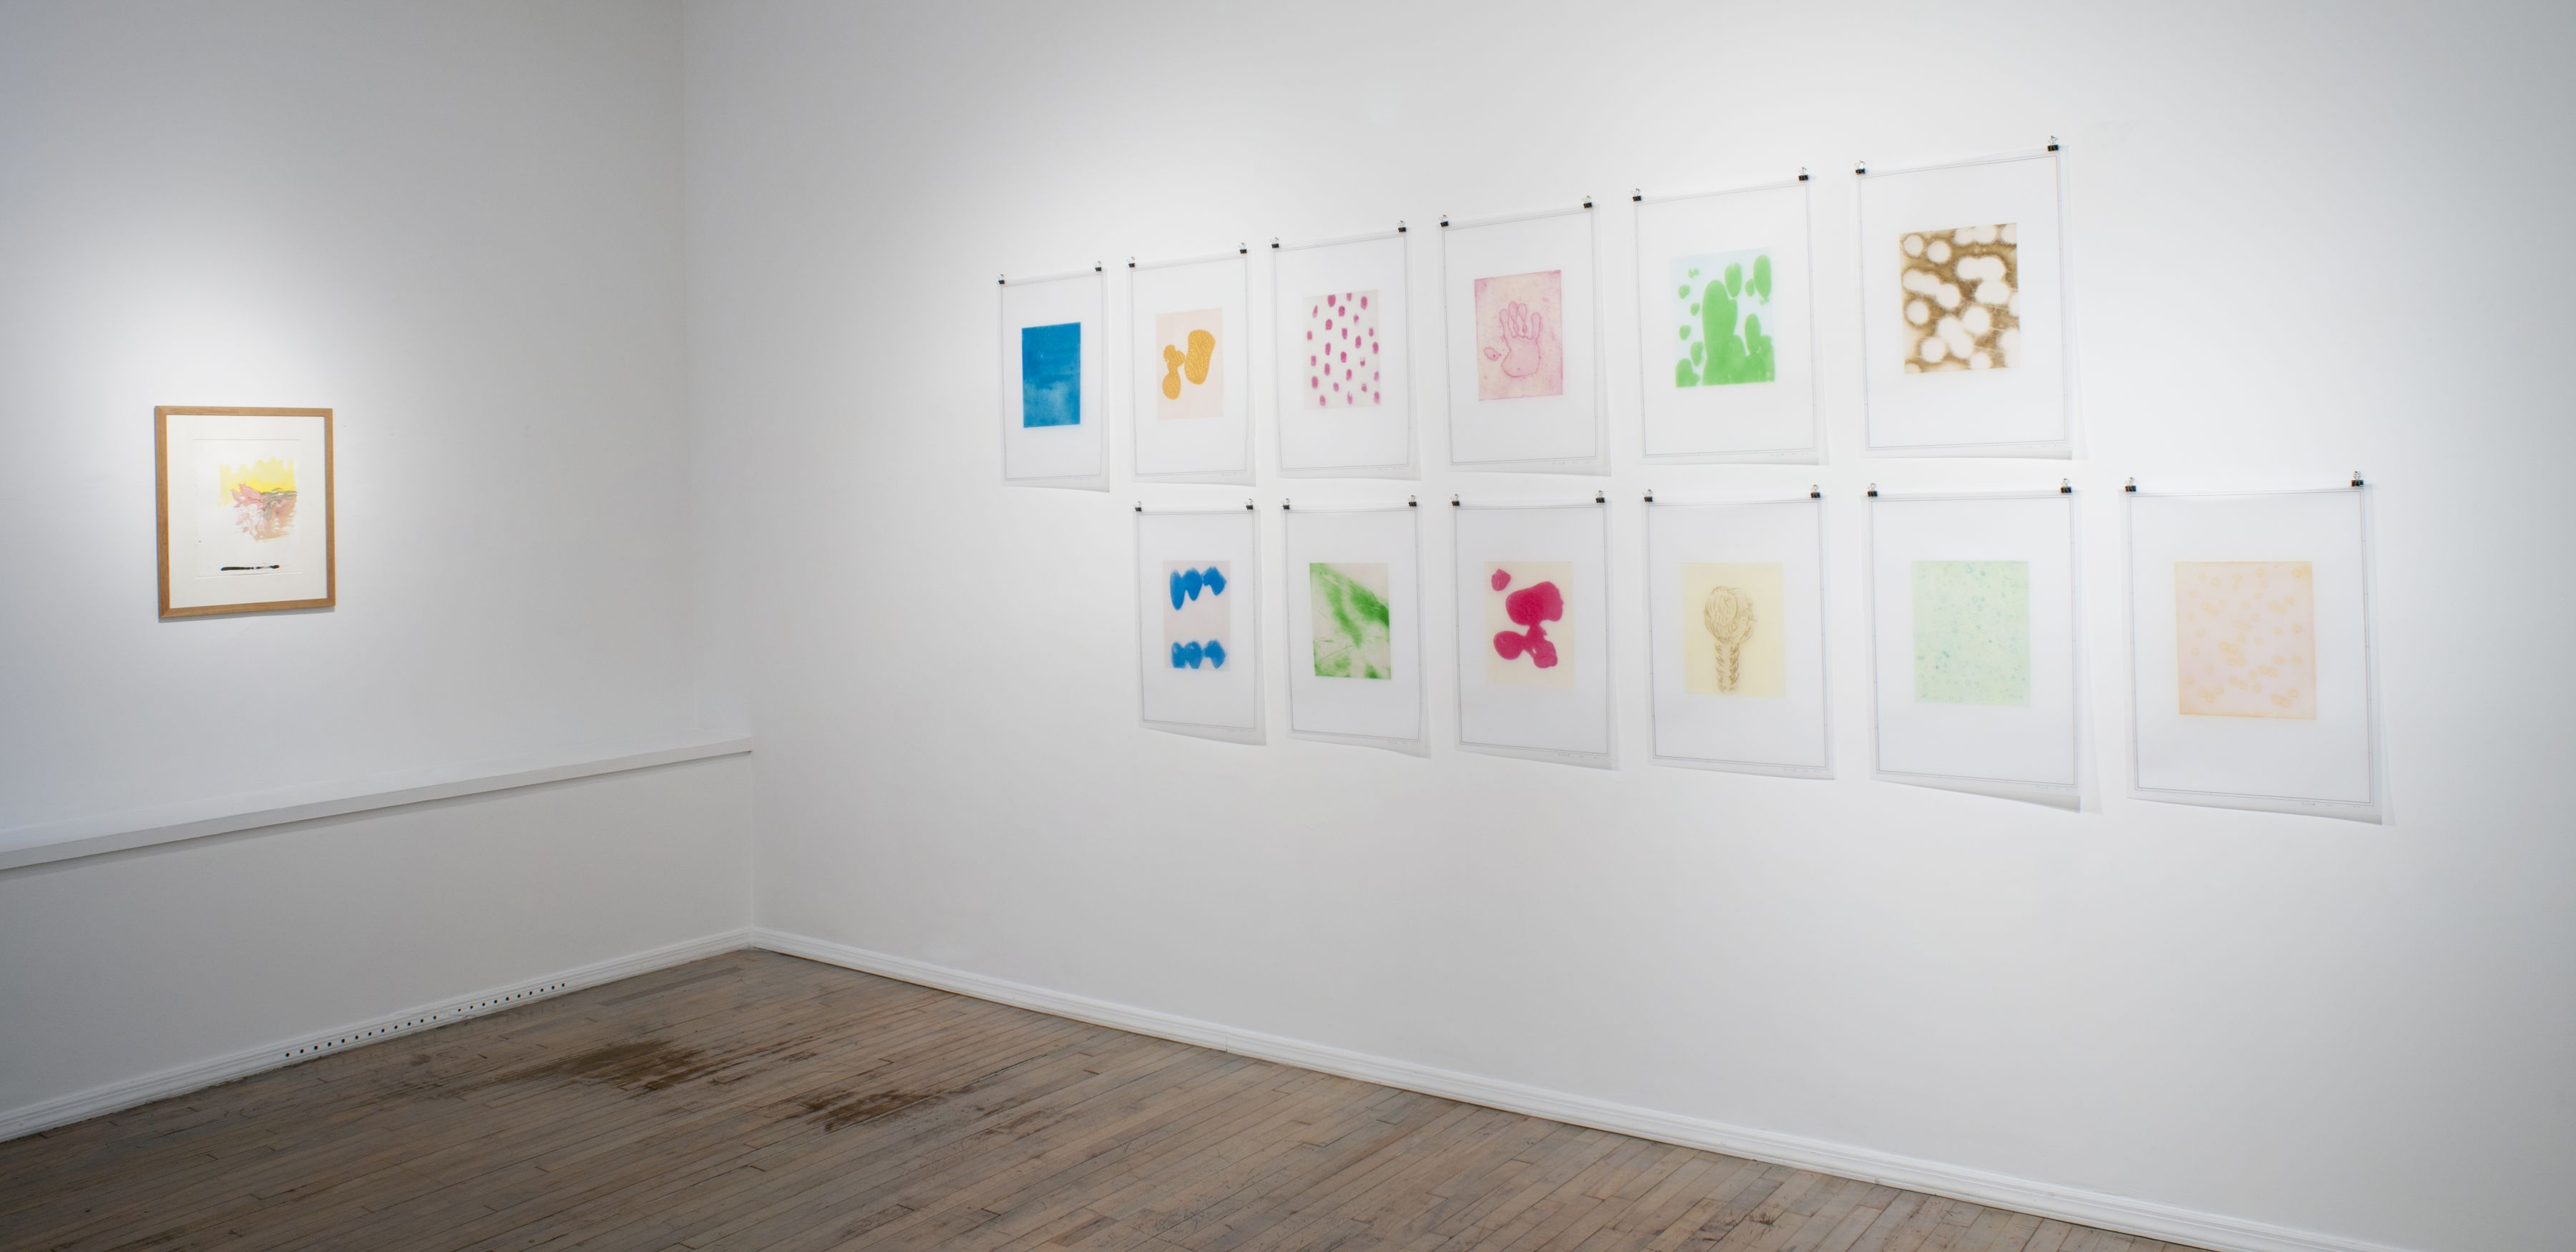 Thomas Schütte: New Watercolors (at 560 Broadway) – installation view 2